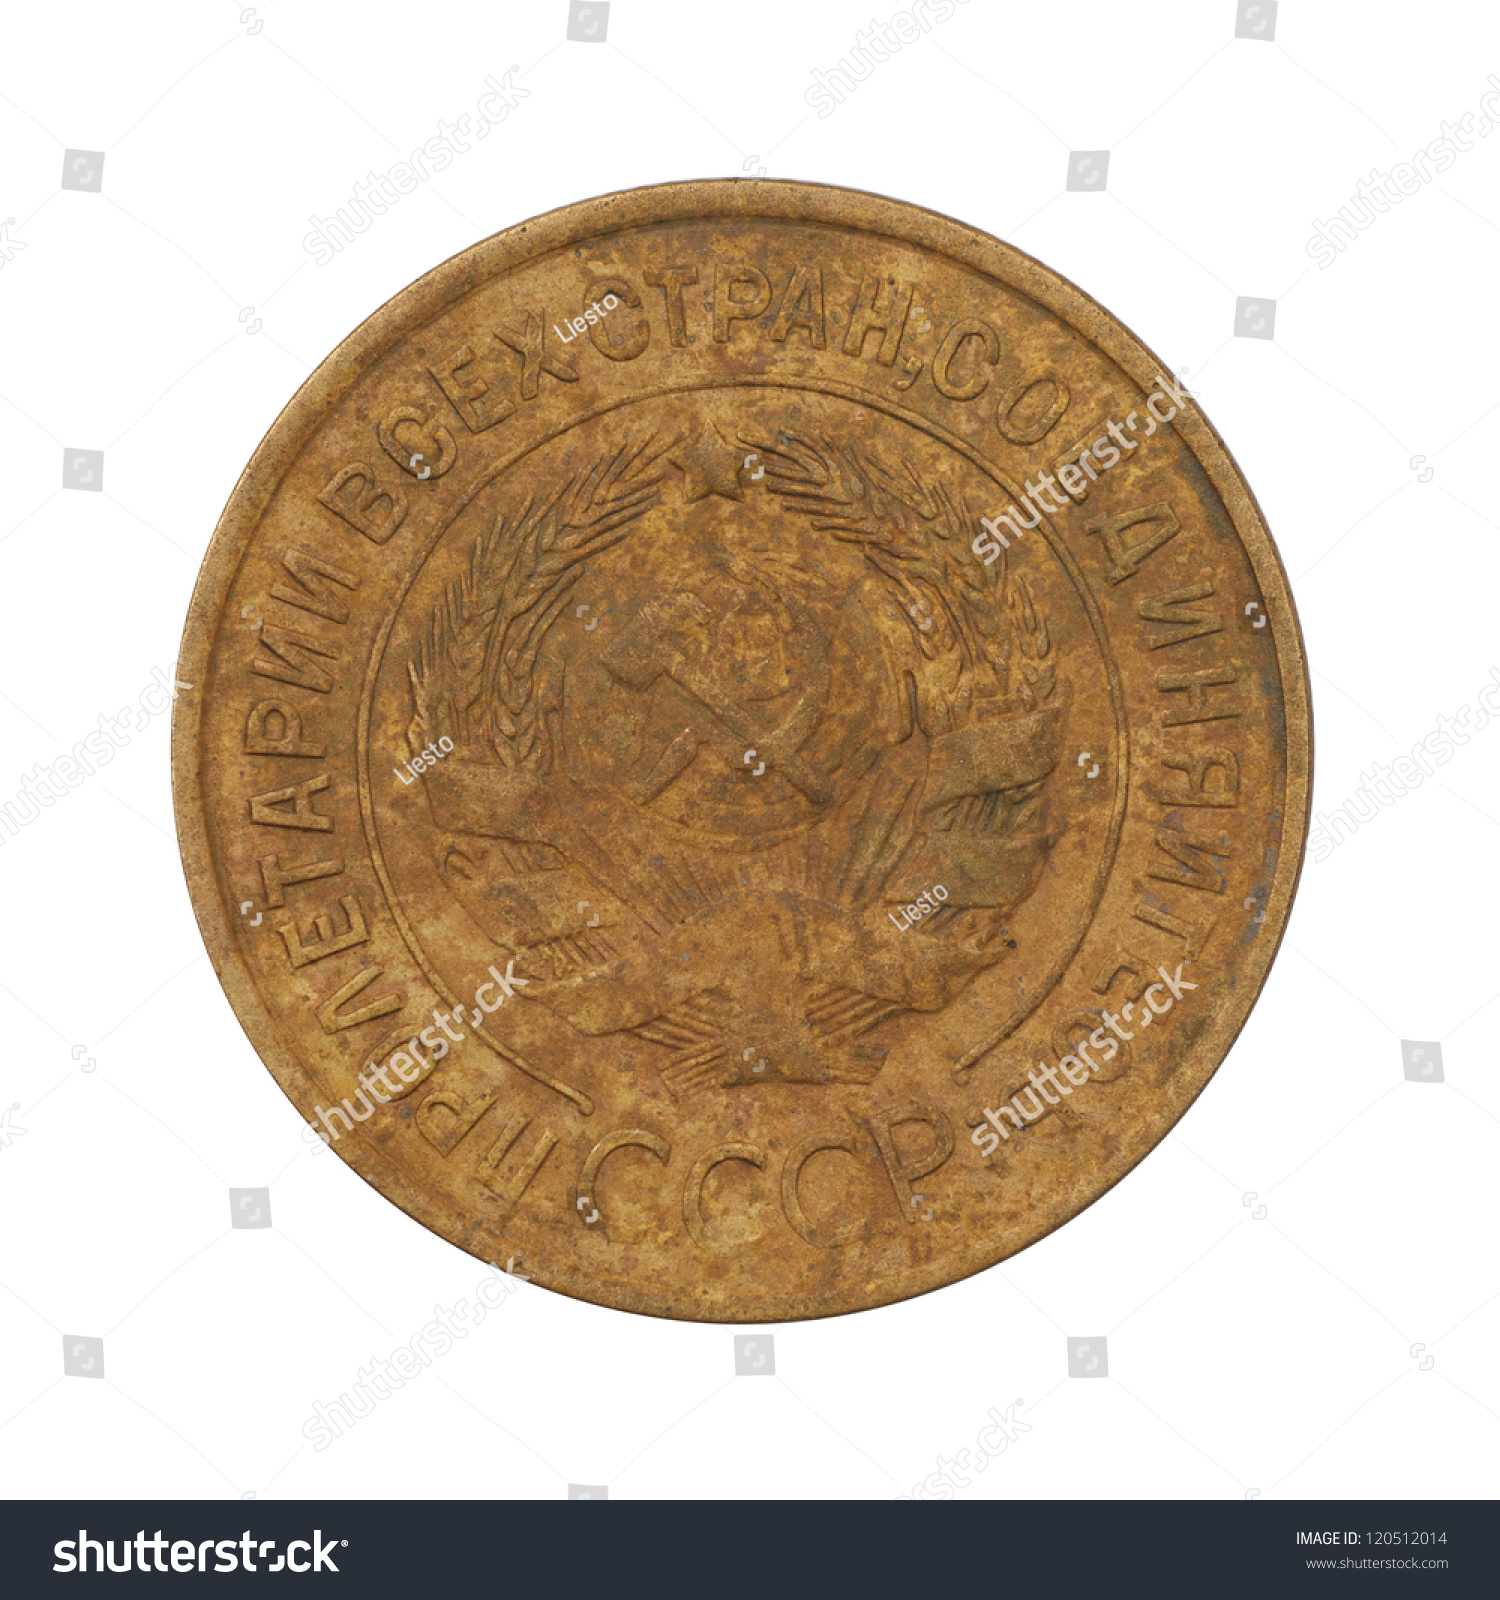 old coins stock image - photo #12